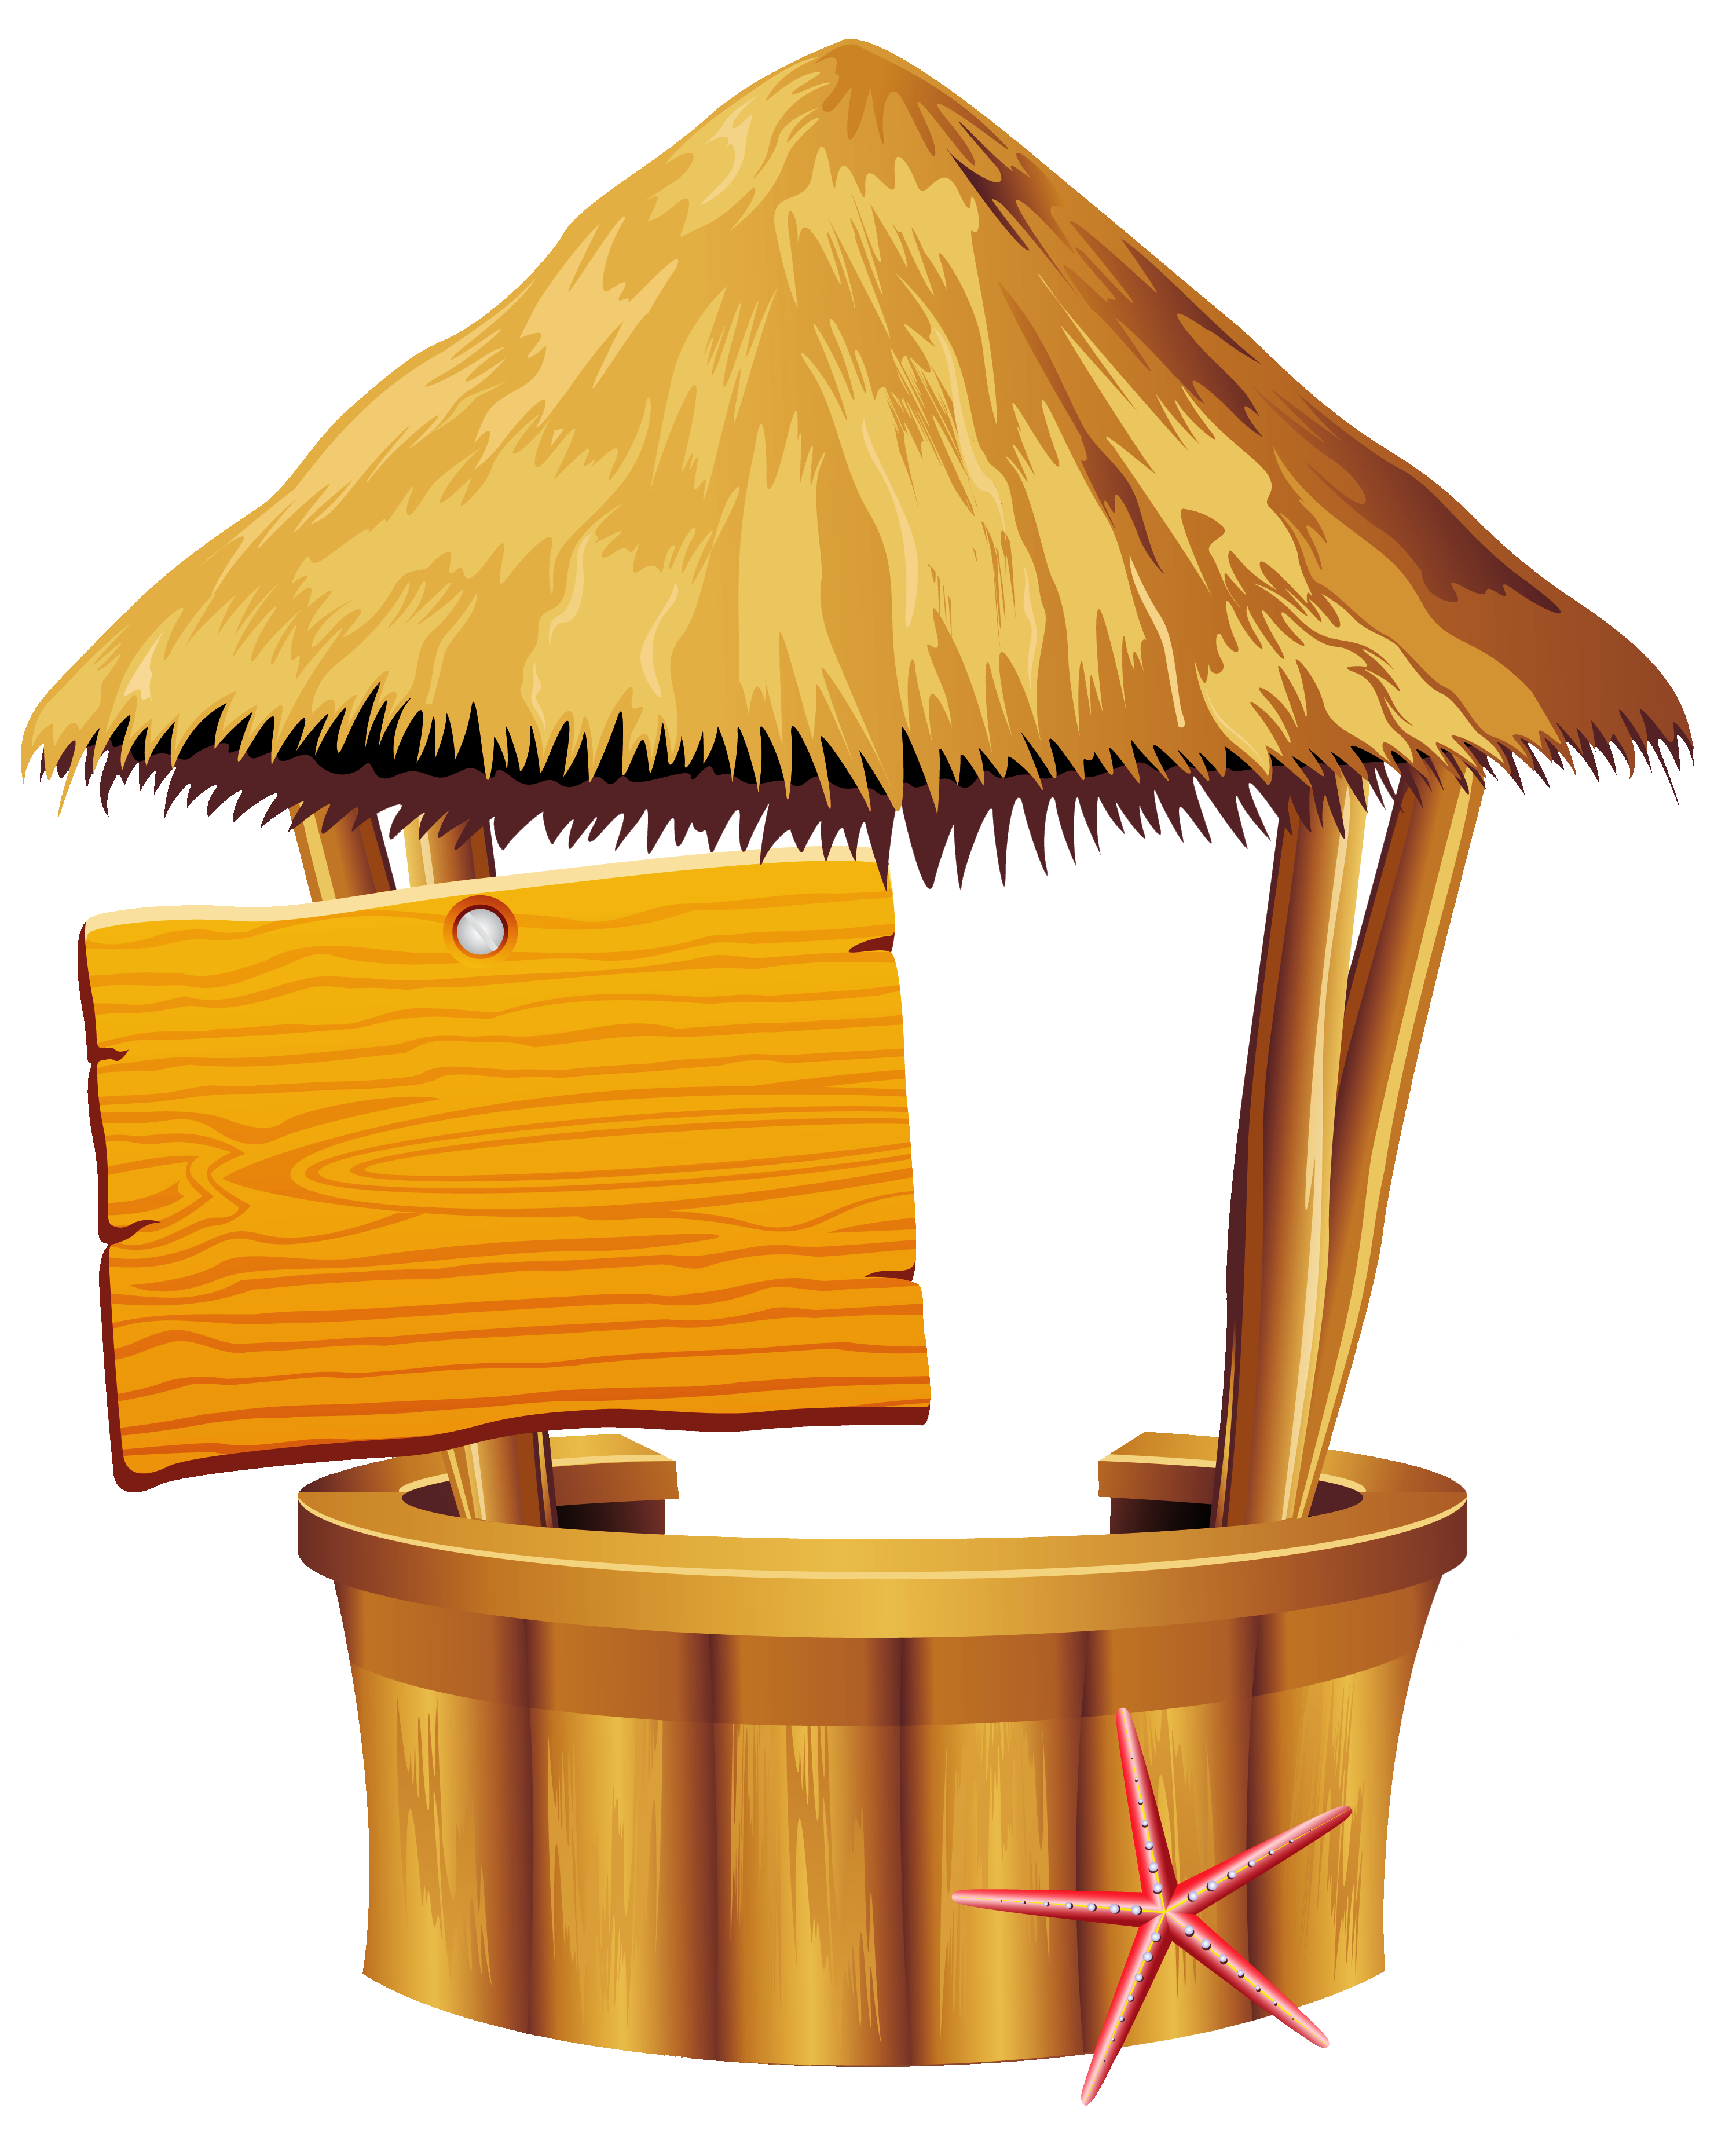 hawaiian beach tiki bar png clipart b f woody pinterest tiki rh pinterest com tiki hut clipart tiki hut clipart black and white